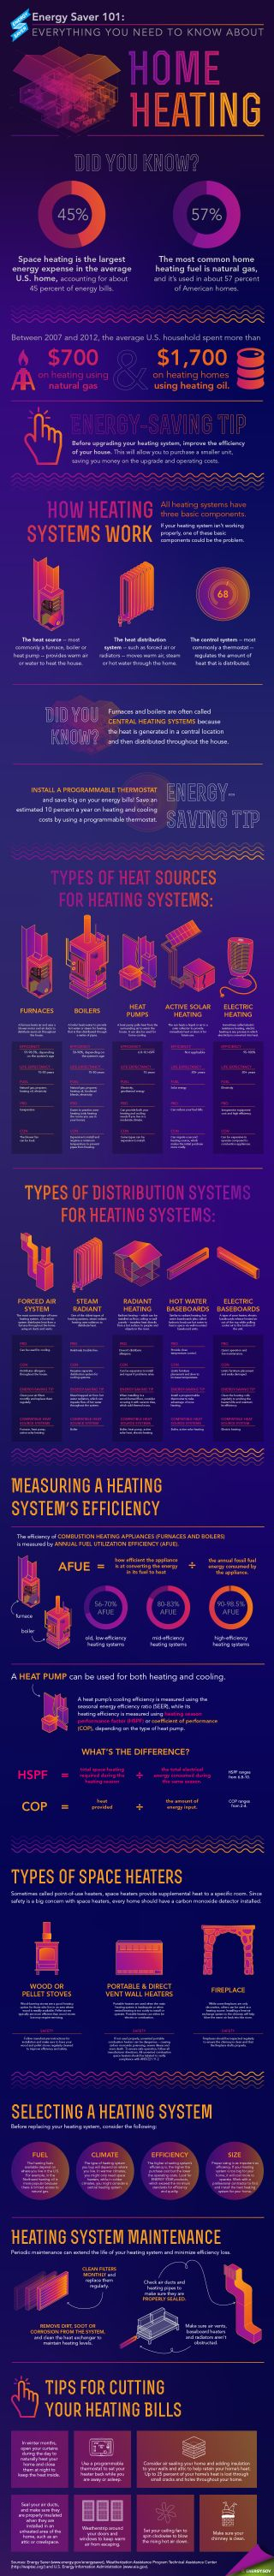 Best Heat For Home best 25+ home heating systems ideas only on pinterest | in floor